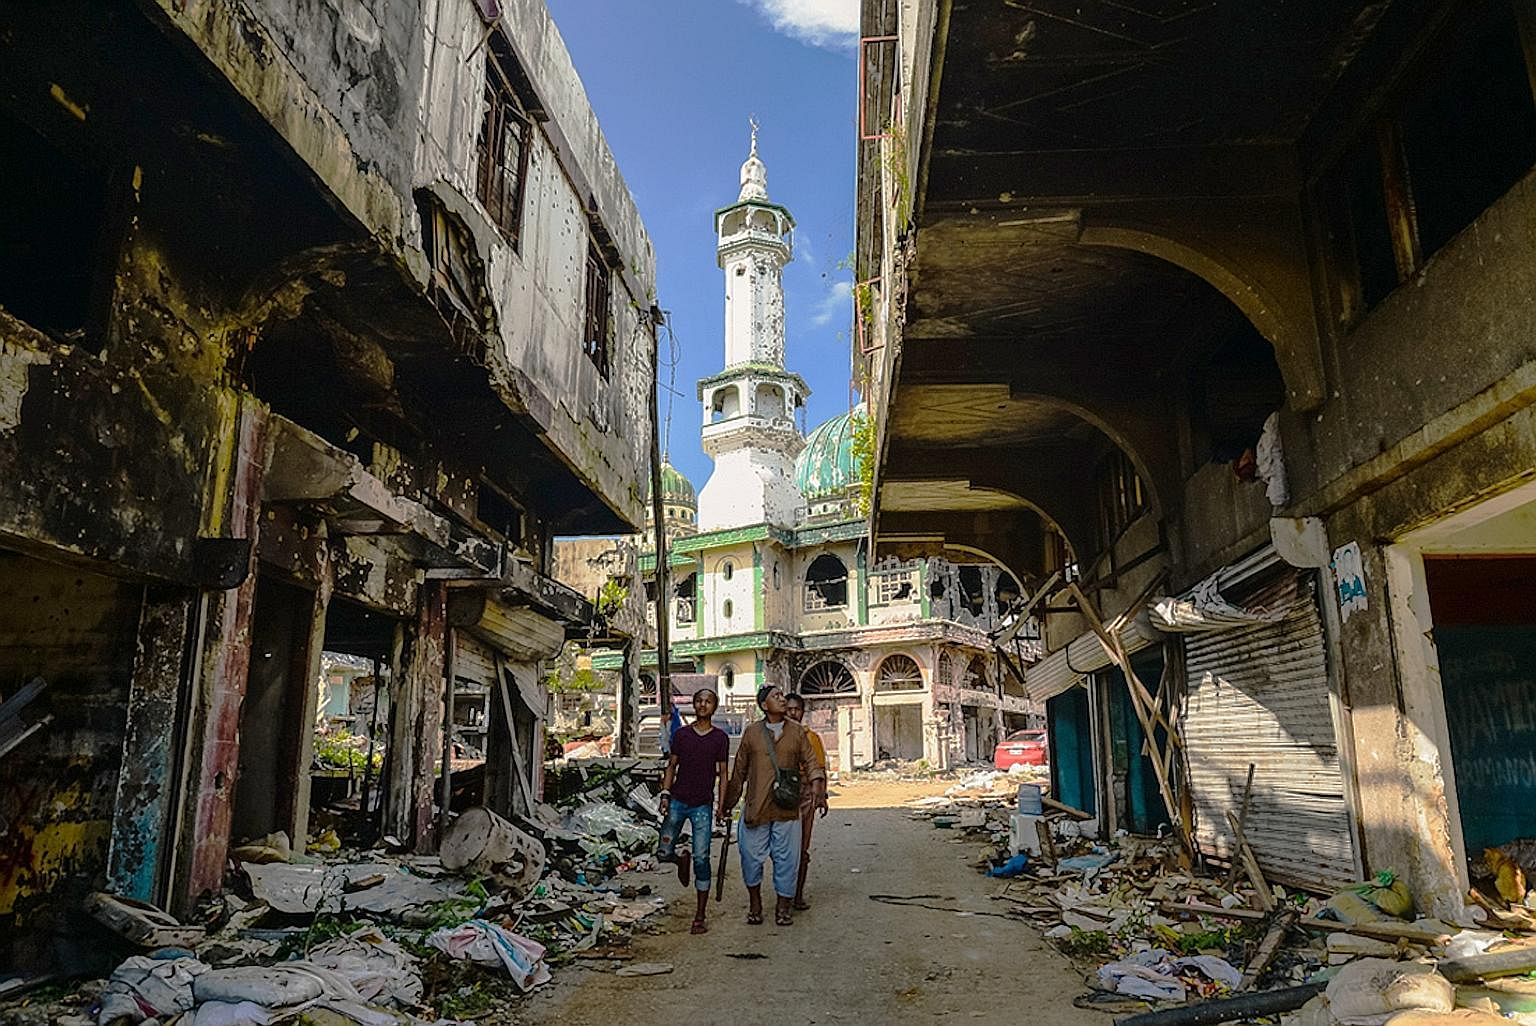 A drone shot of Marawi's commercial hub, which was destroyed during the five months of fighting between security forces and militants. Till today, the area remains a desolate wasteland covering 250ha that includes the hollowed-out shell of what was o